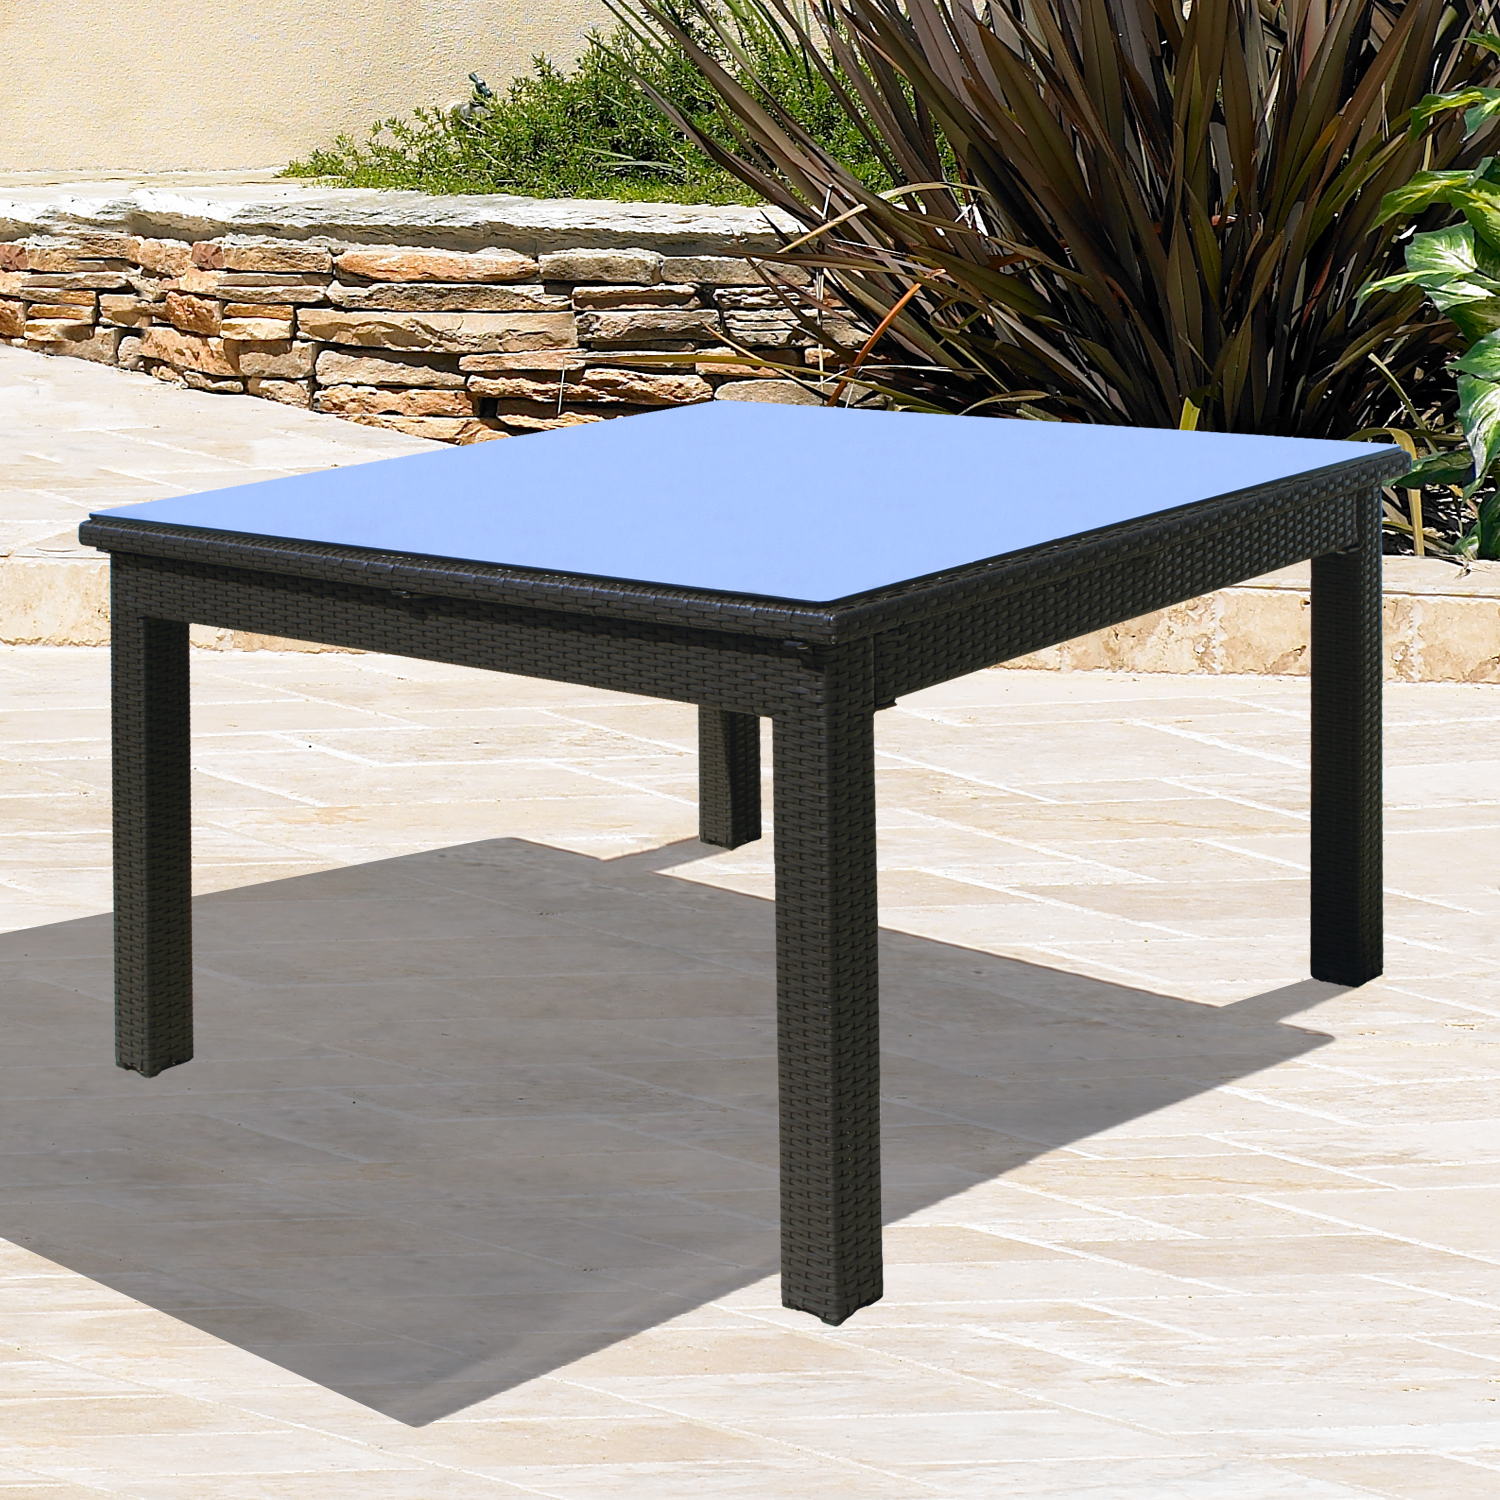 VENICE 60″ SQUARE TABLE RC898  $690.00